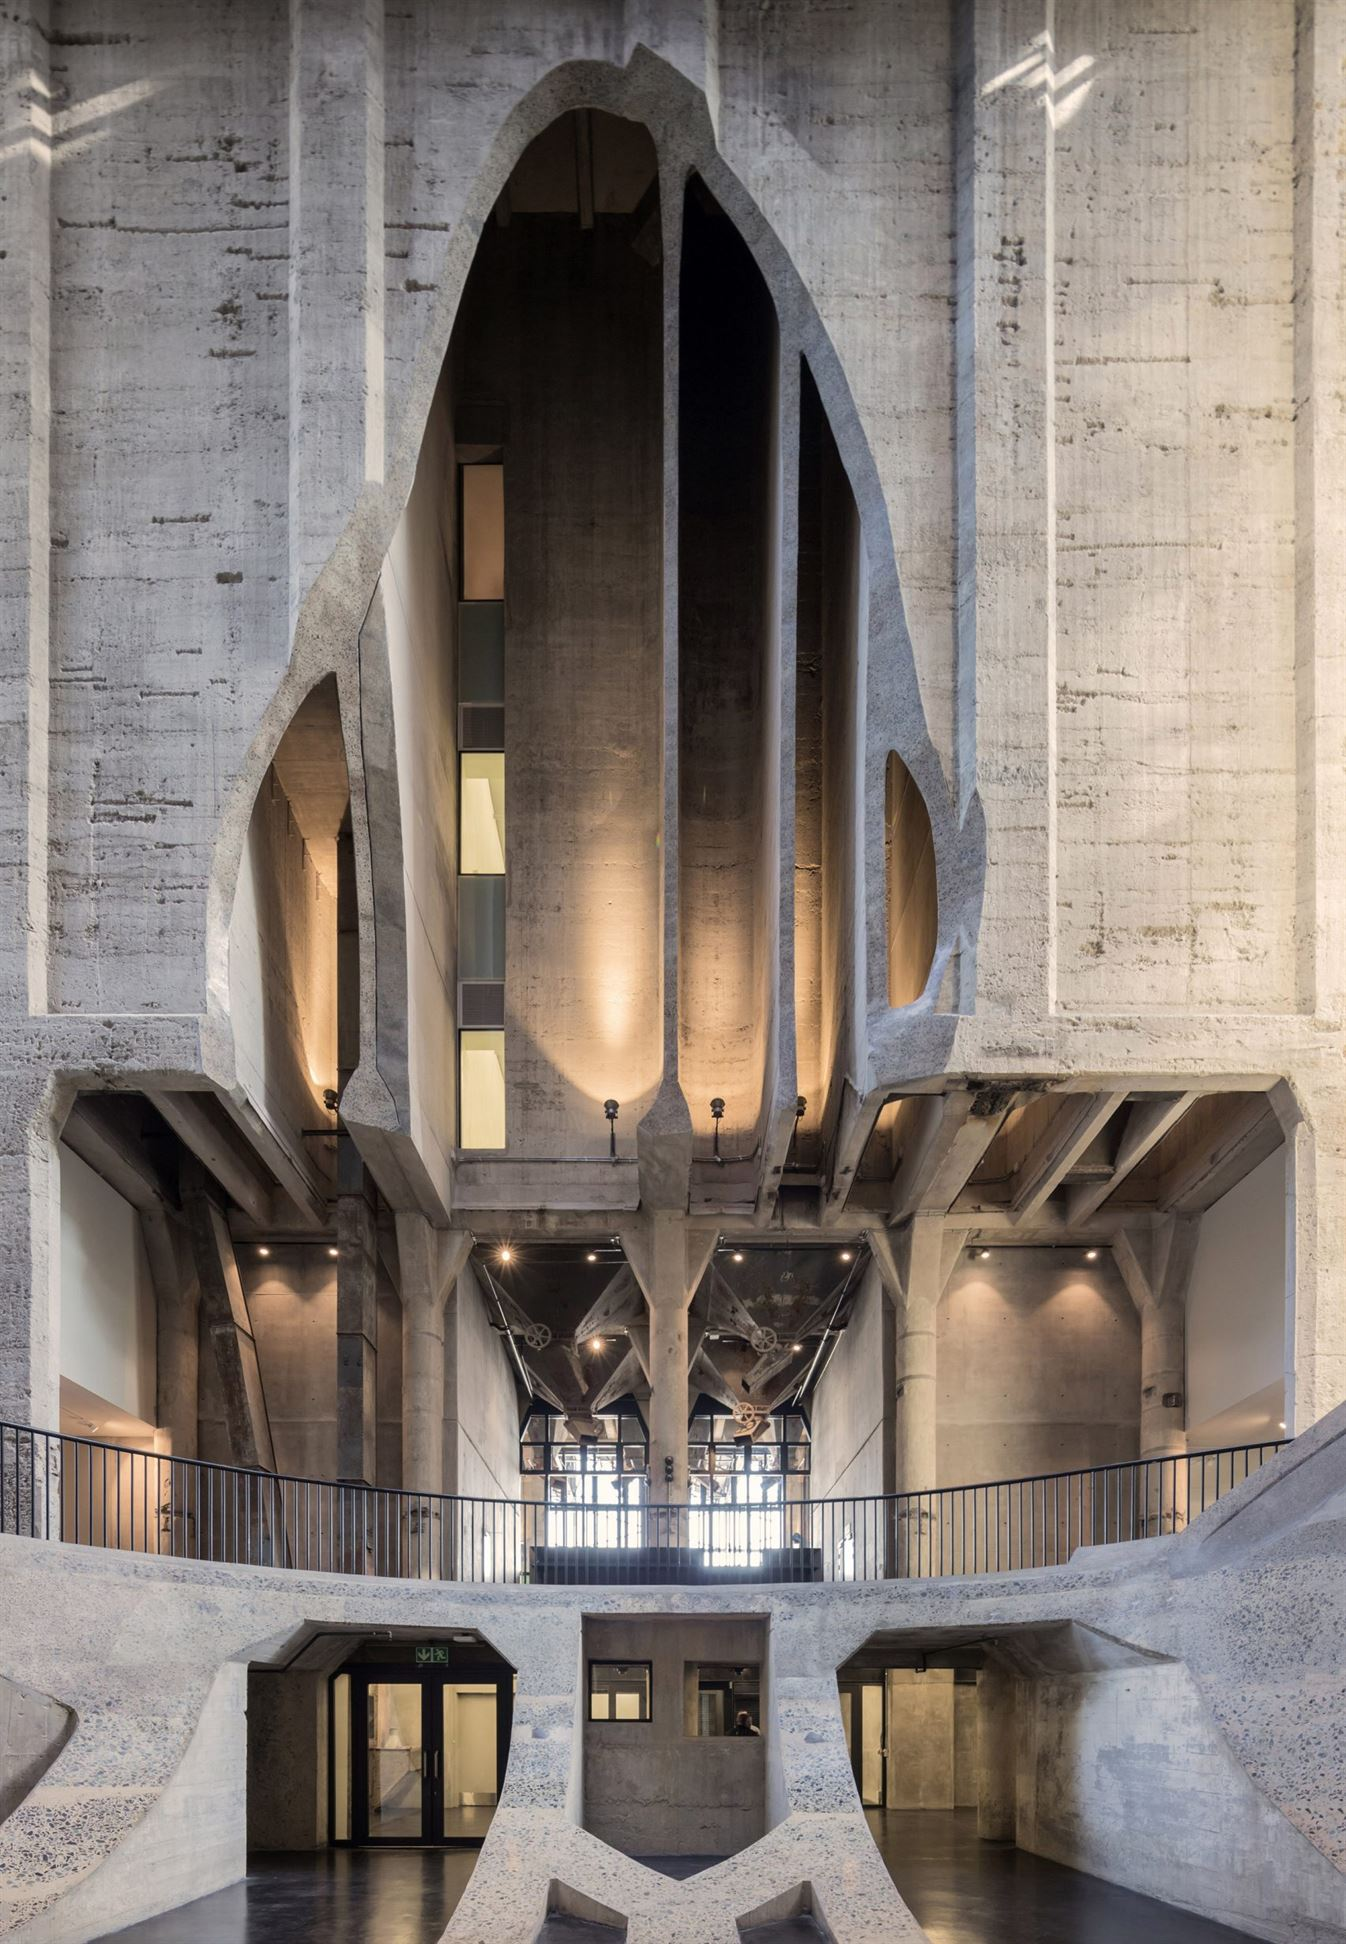 heatherwick-architecture-cultural-galleries-v-and-a-south-africa-interior_dezeen_2364_col_2-1704x2462